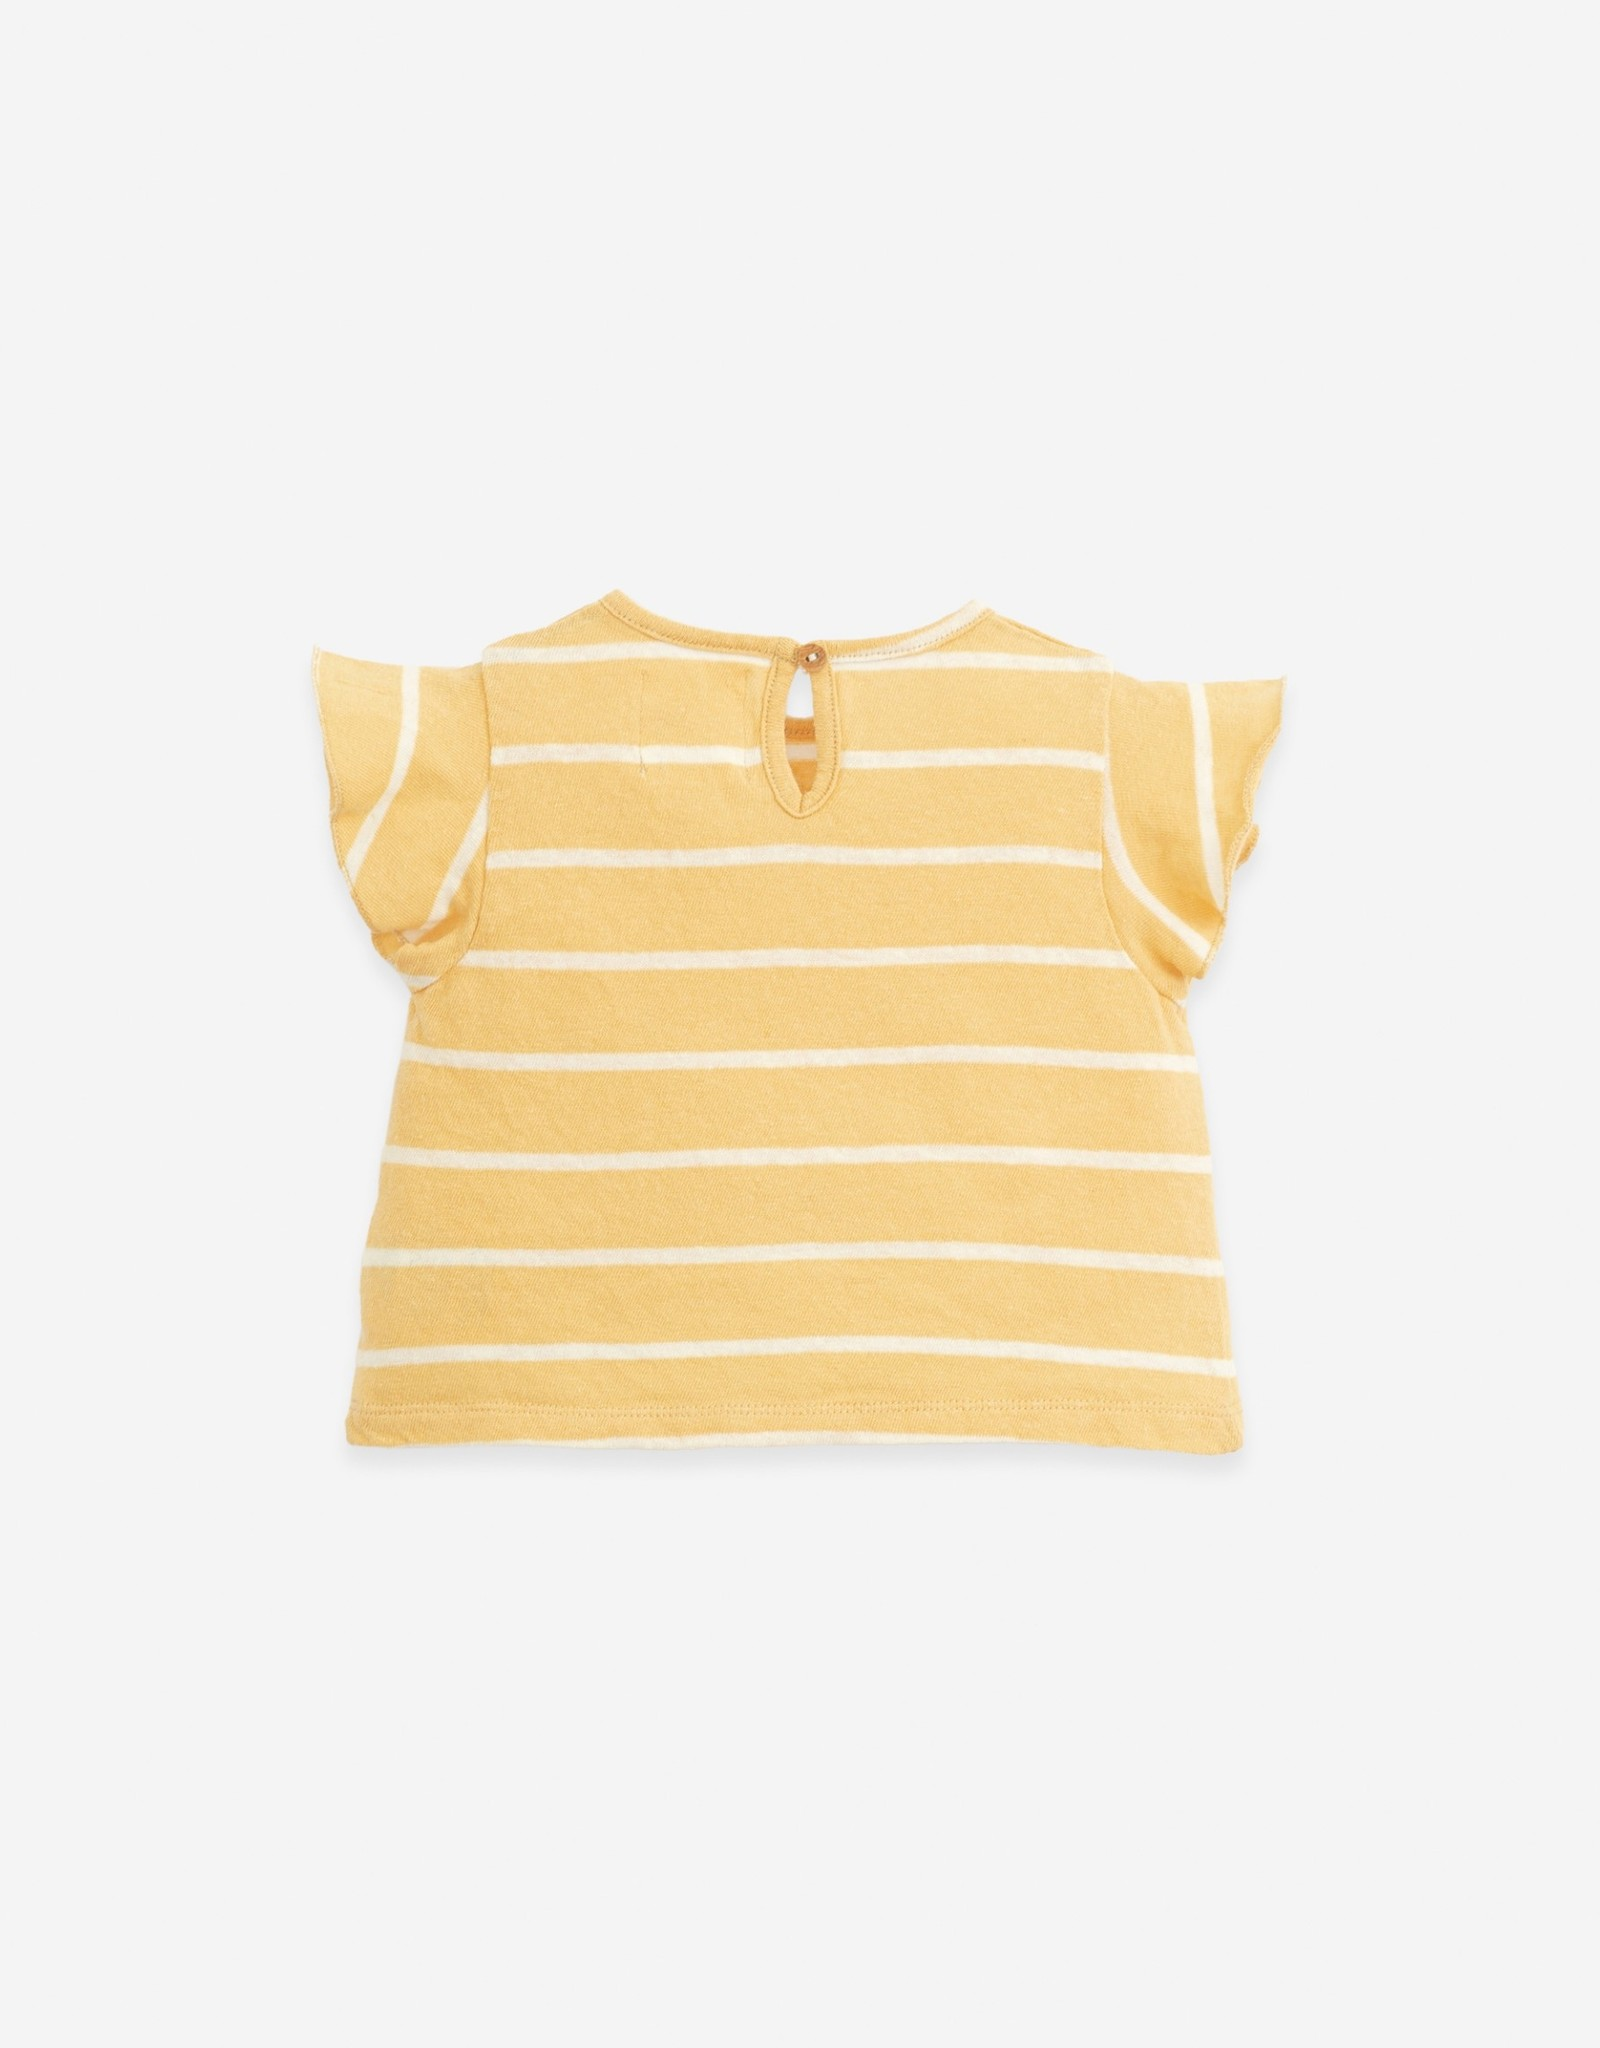 Play Up Play Up gestreept t-shirt straw (strogeel)